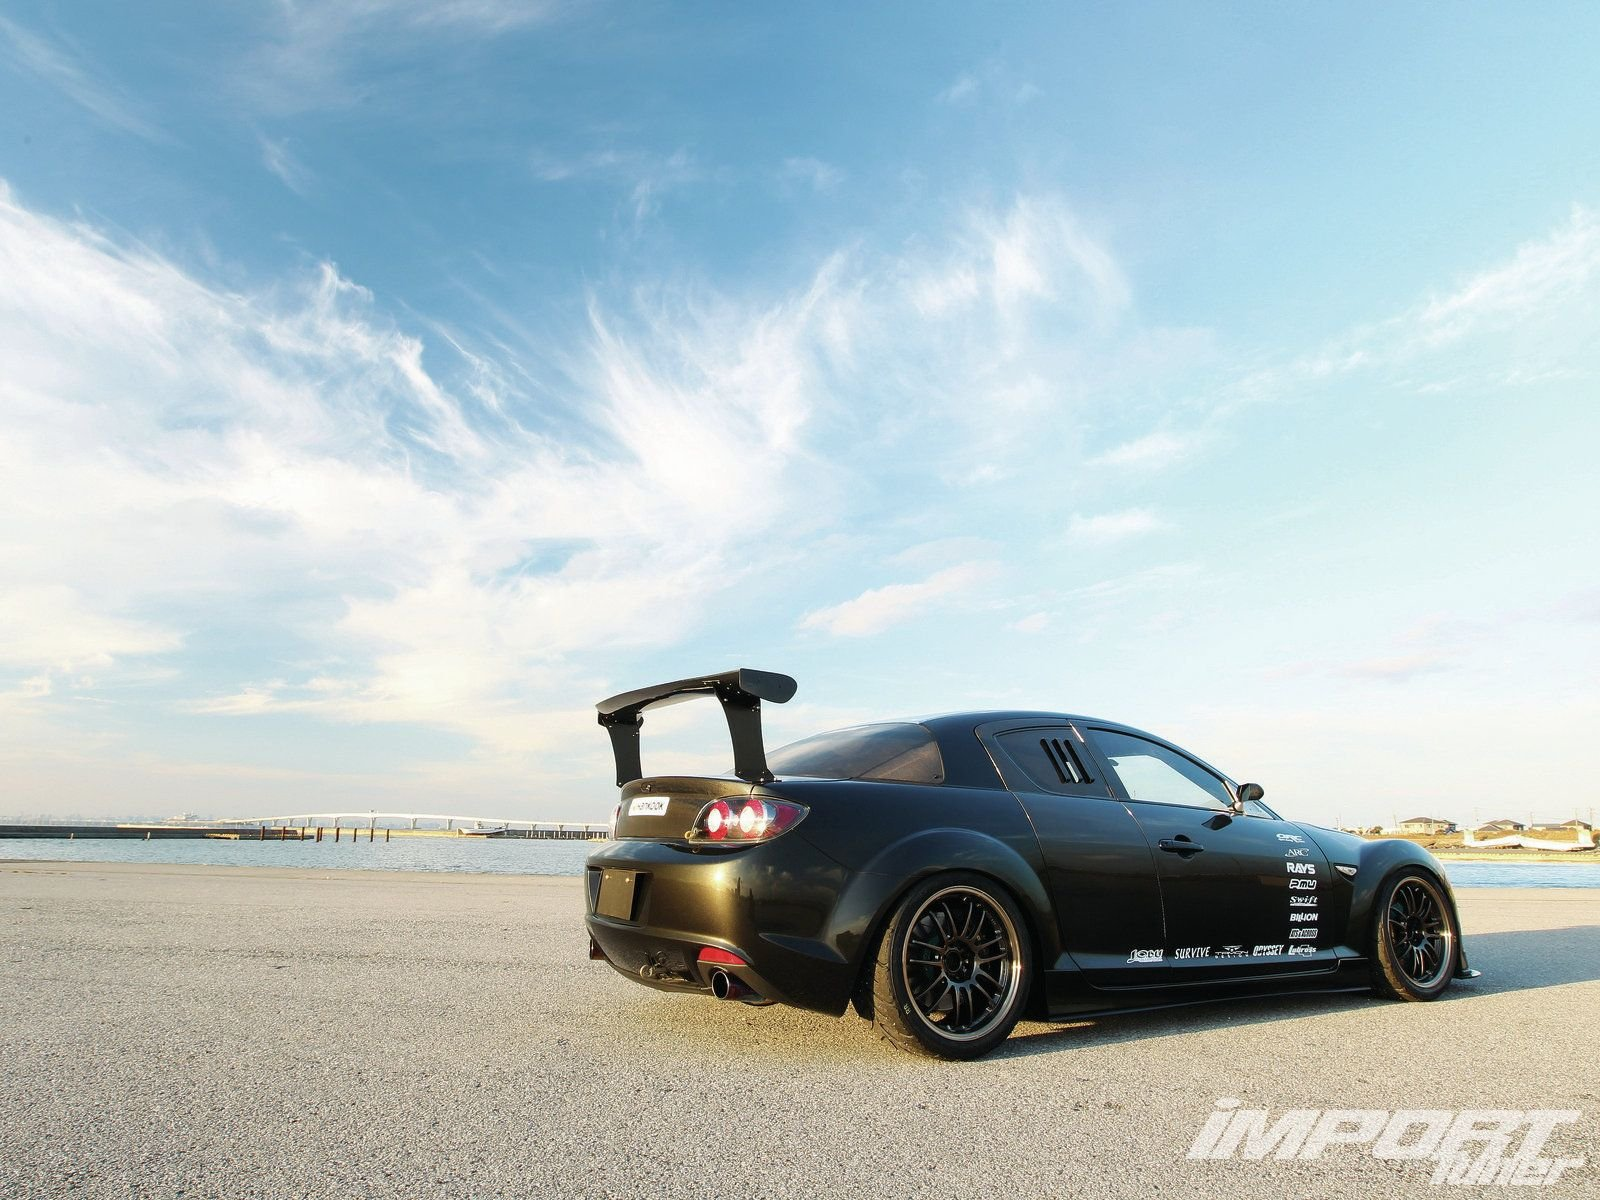 mazda rx8 coupe tuning japan body kit cars wallpaper 1600x1200 498783 wallpaperup. Black Bedroom Furniture Sets. Home Design Ideas